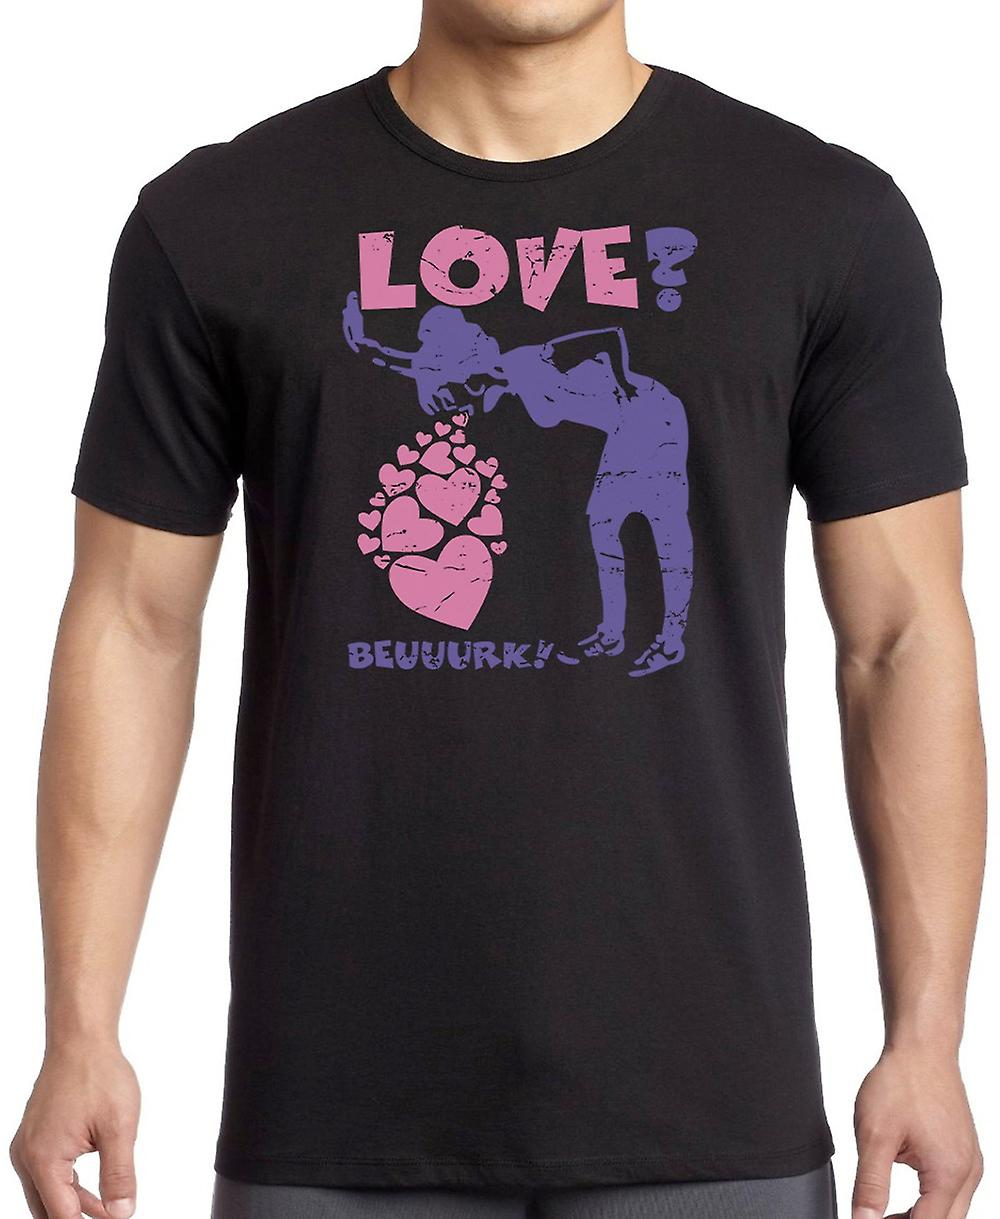 Love? Vomiting Love Hearts Girlfriend - Funny Crude Kids T Shirt